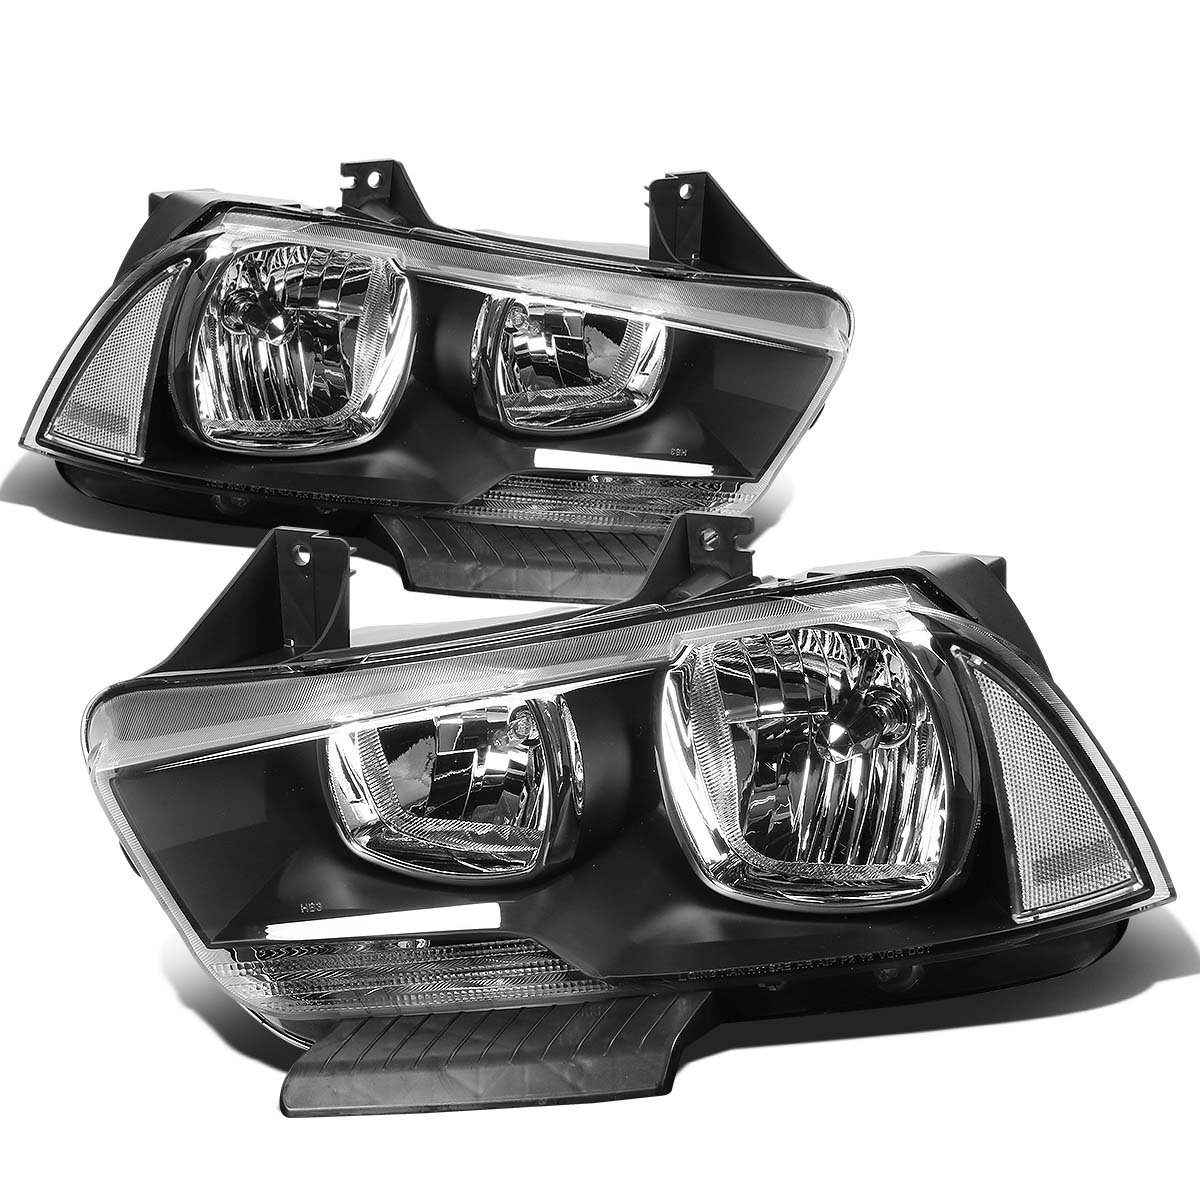 11 14 Dodge Charger Halogen Model Replacement Crystal